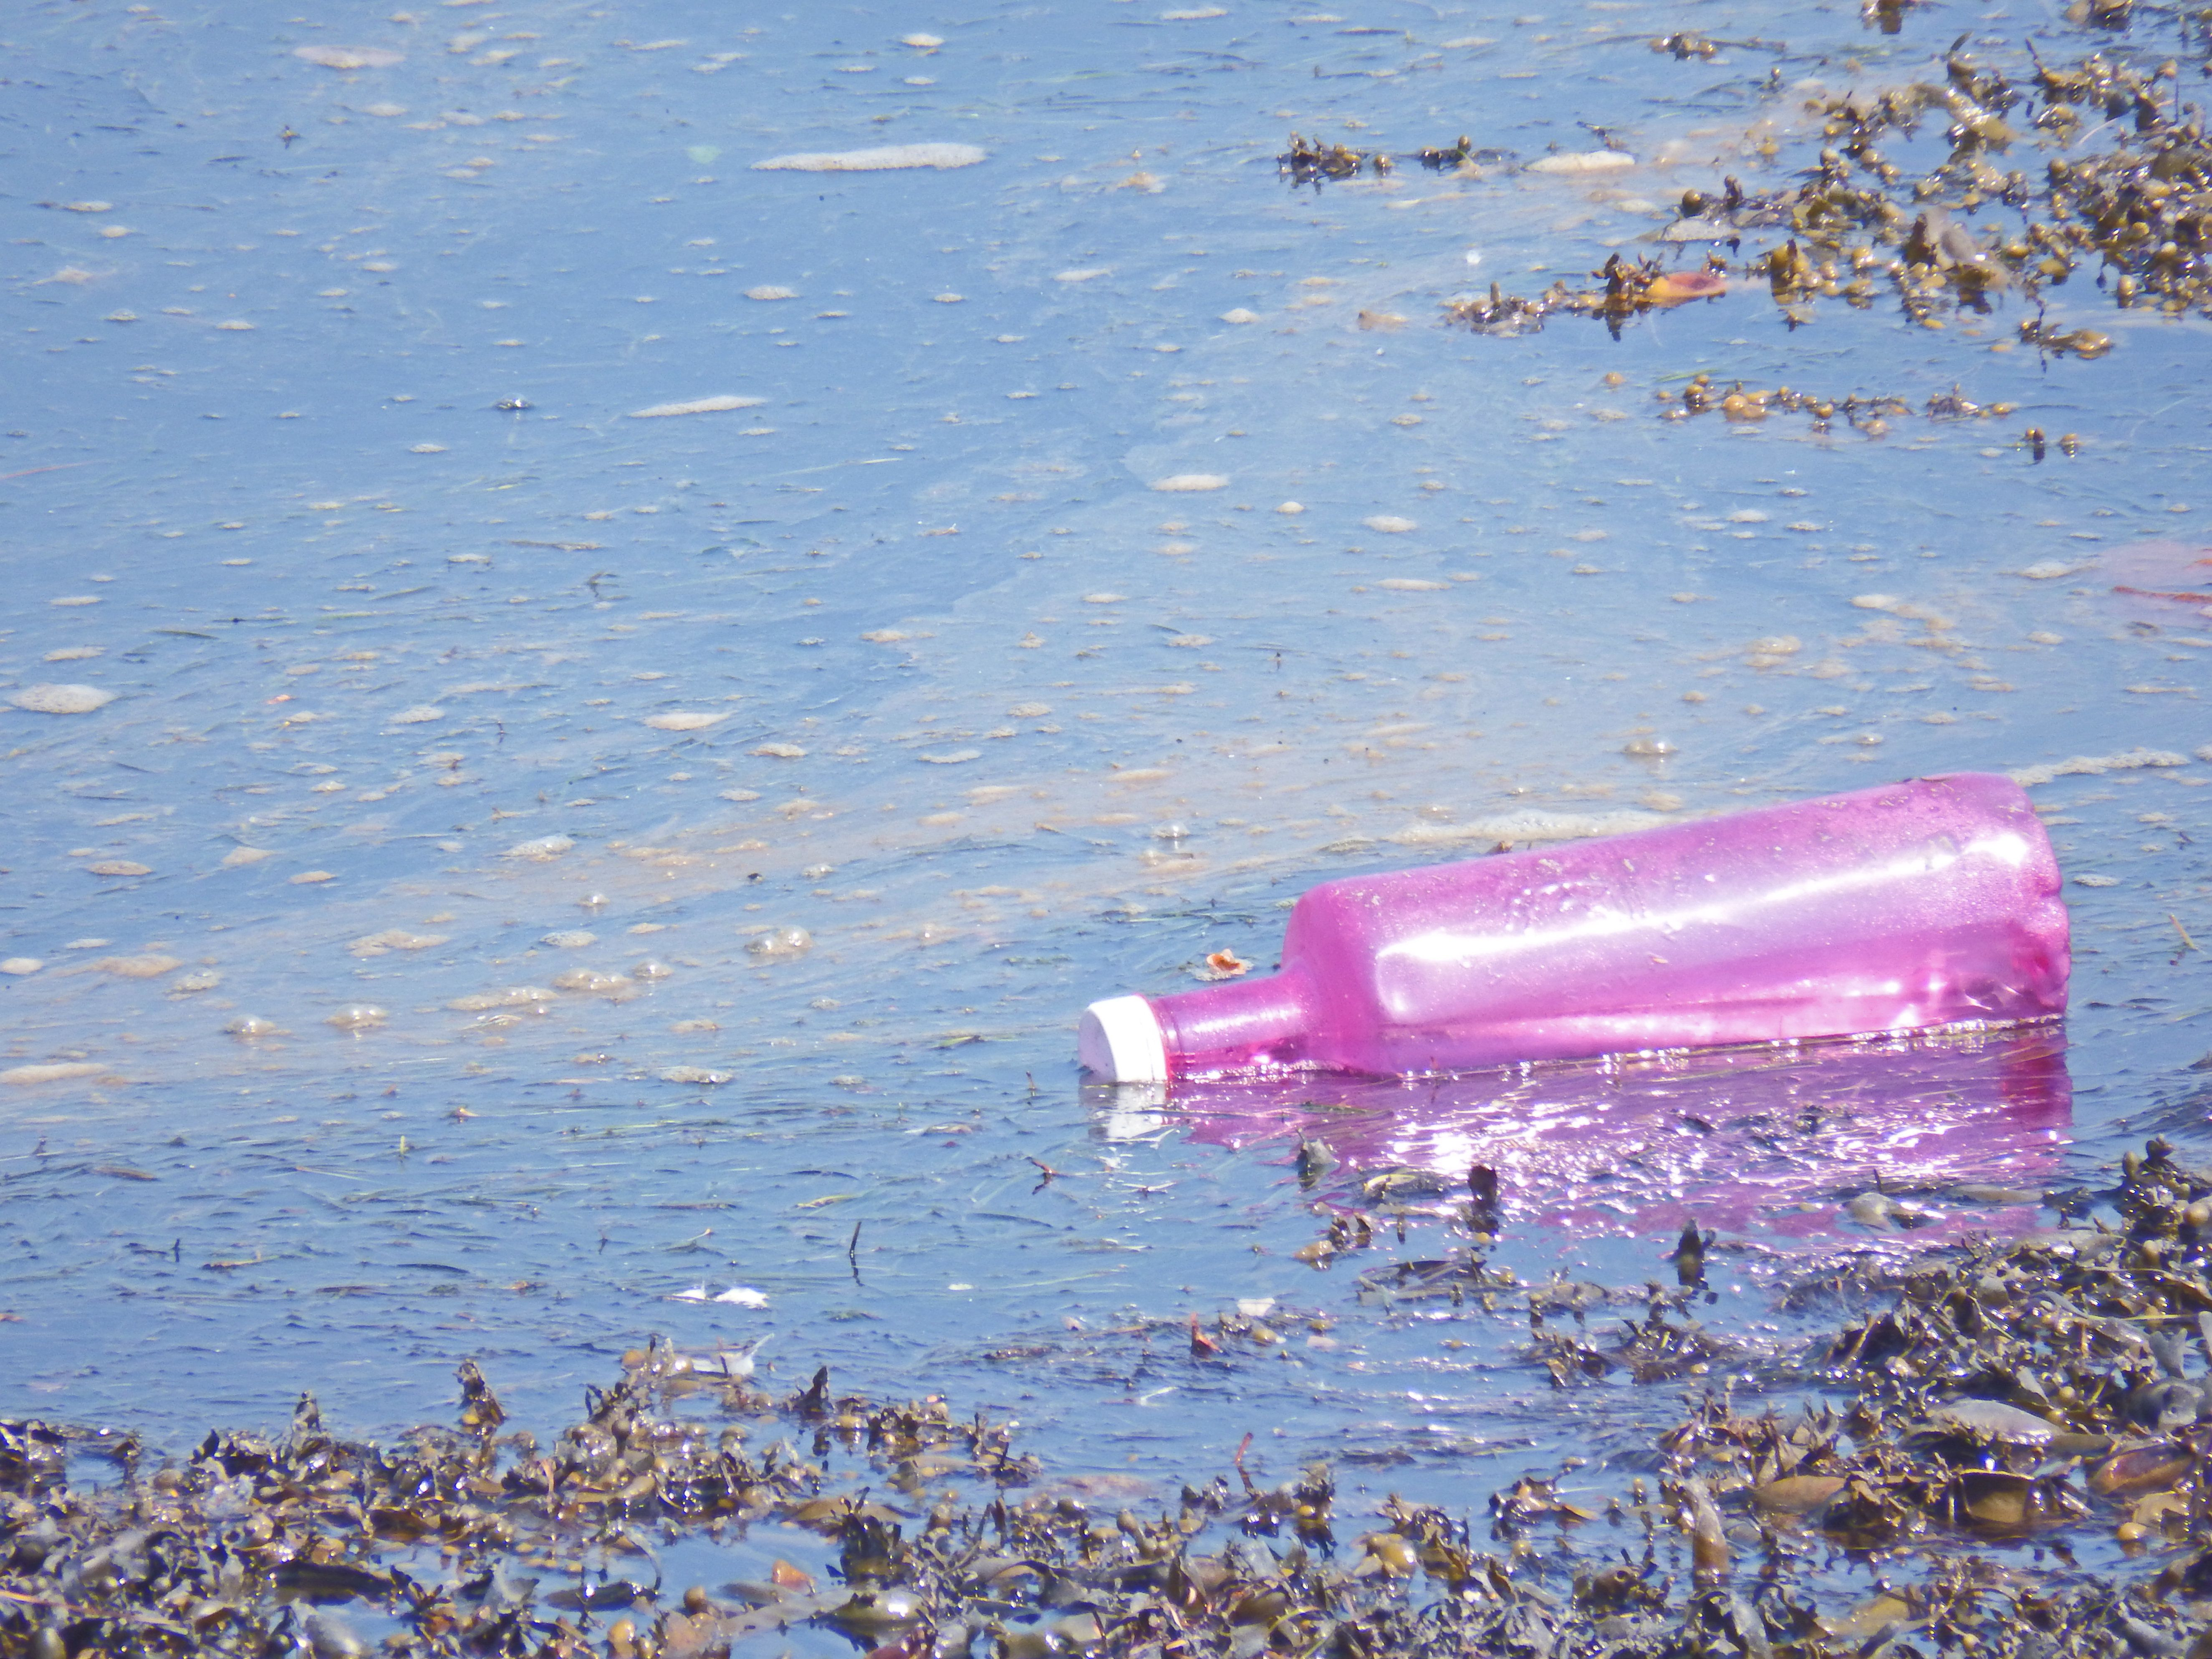 One analysis of 259 water bottles from 19 places in nine countries found an average of 325 plastic particles in every liter o